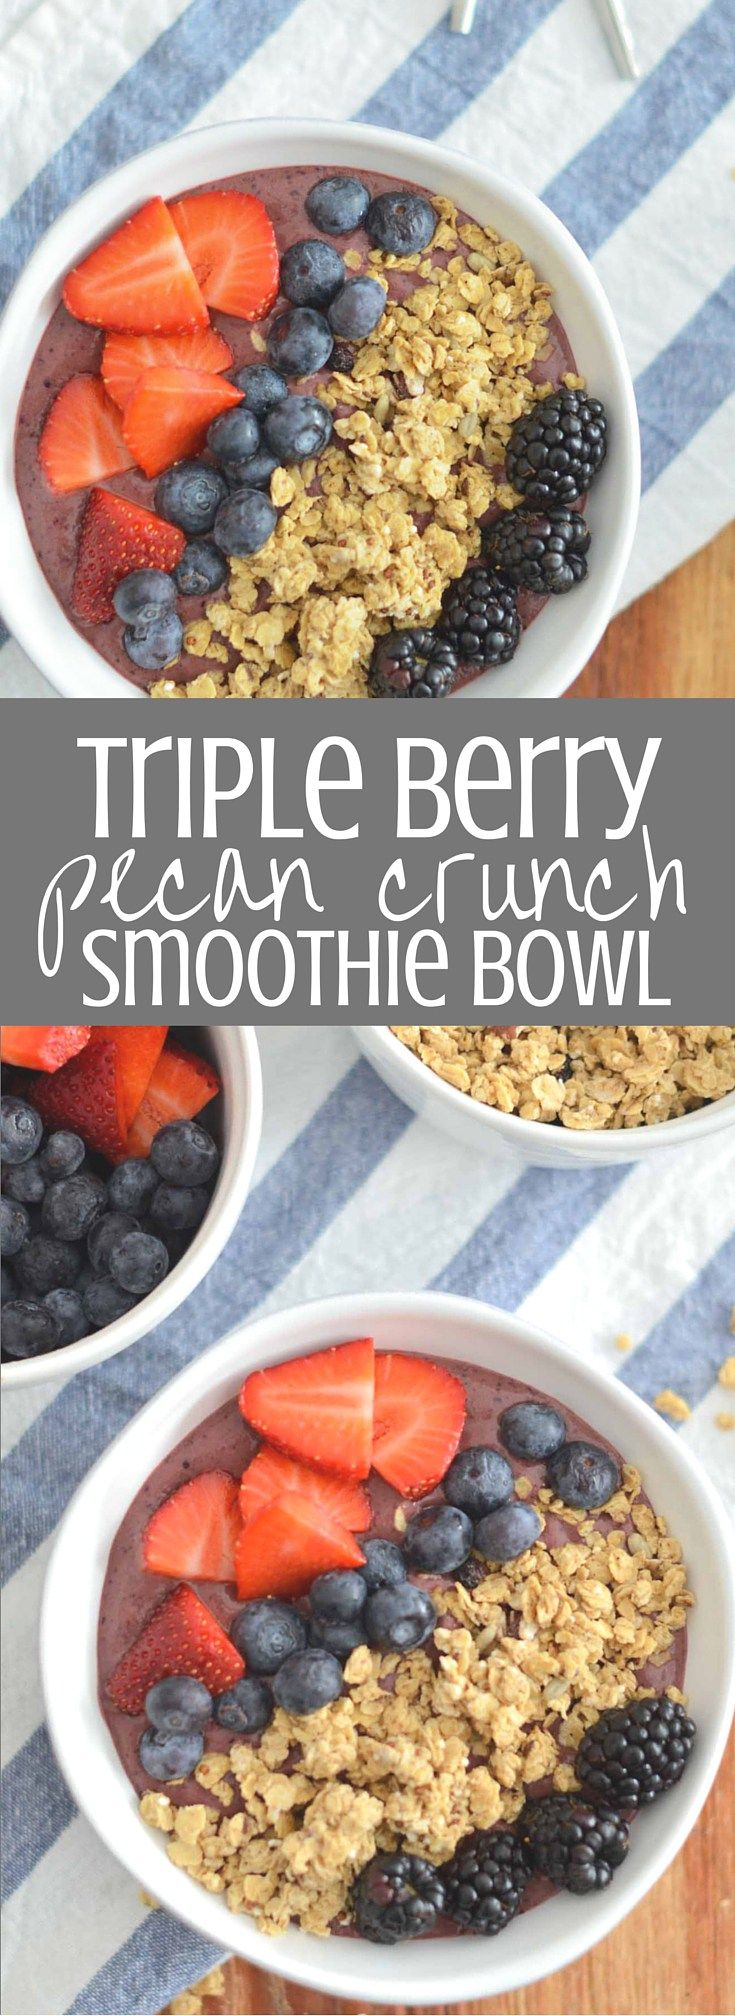 Triple Berry Pecan Crunch Smoothie Bowl is packed with fruit and spinach and topped with crunchy delicious Quaker® Real Medleys SuperGrains Blueberry Pecan Granola. This smoothie bowl is a healthy and satisfying start to the day! Clickthrough for the full recipe and pin for later! #GranolaMyWay #ad